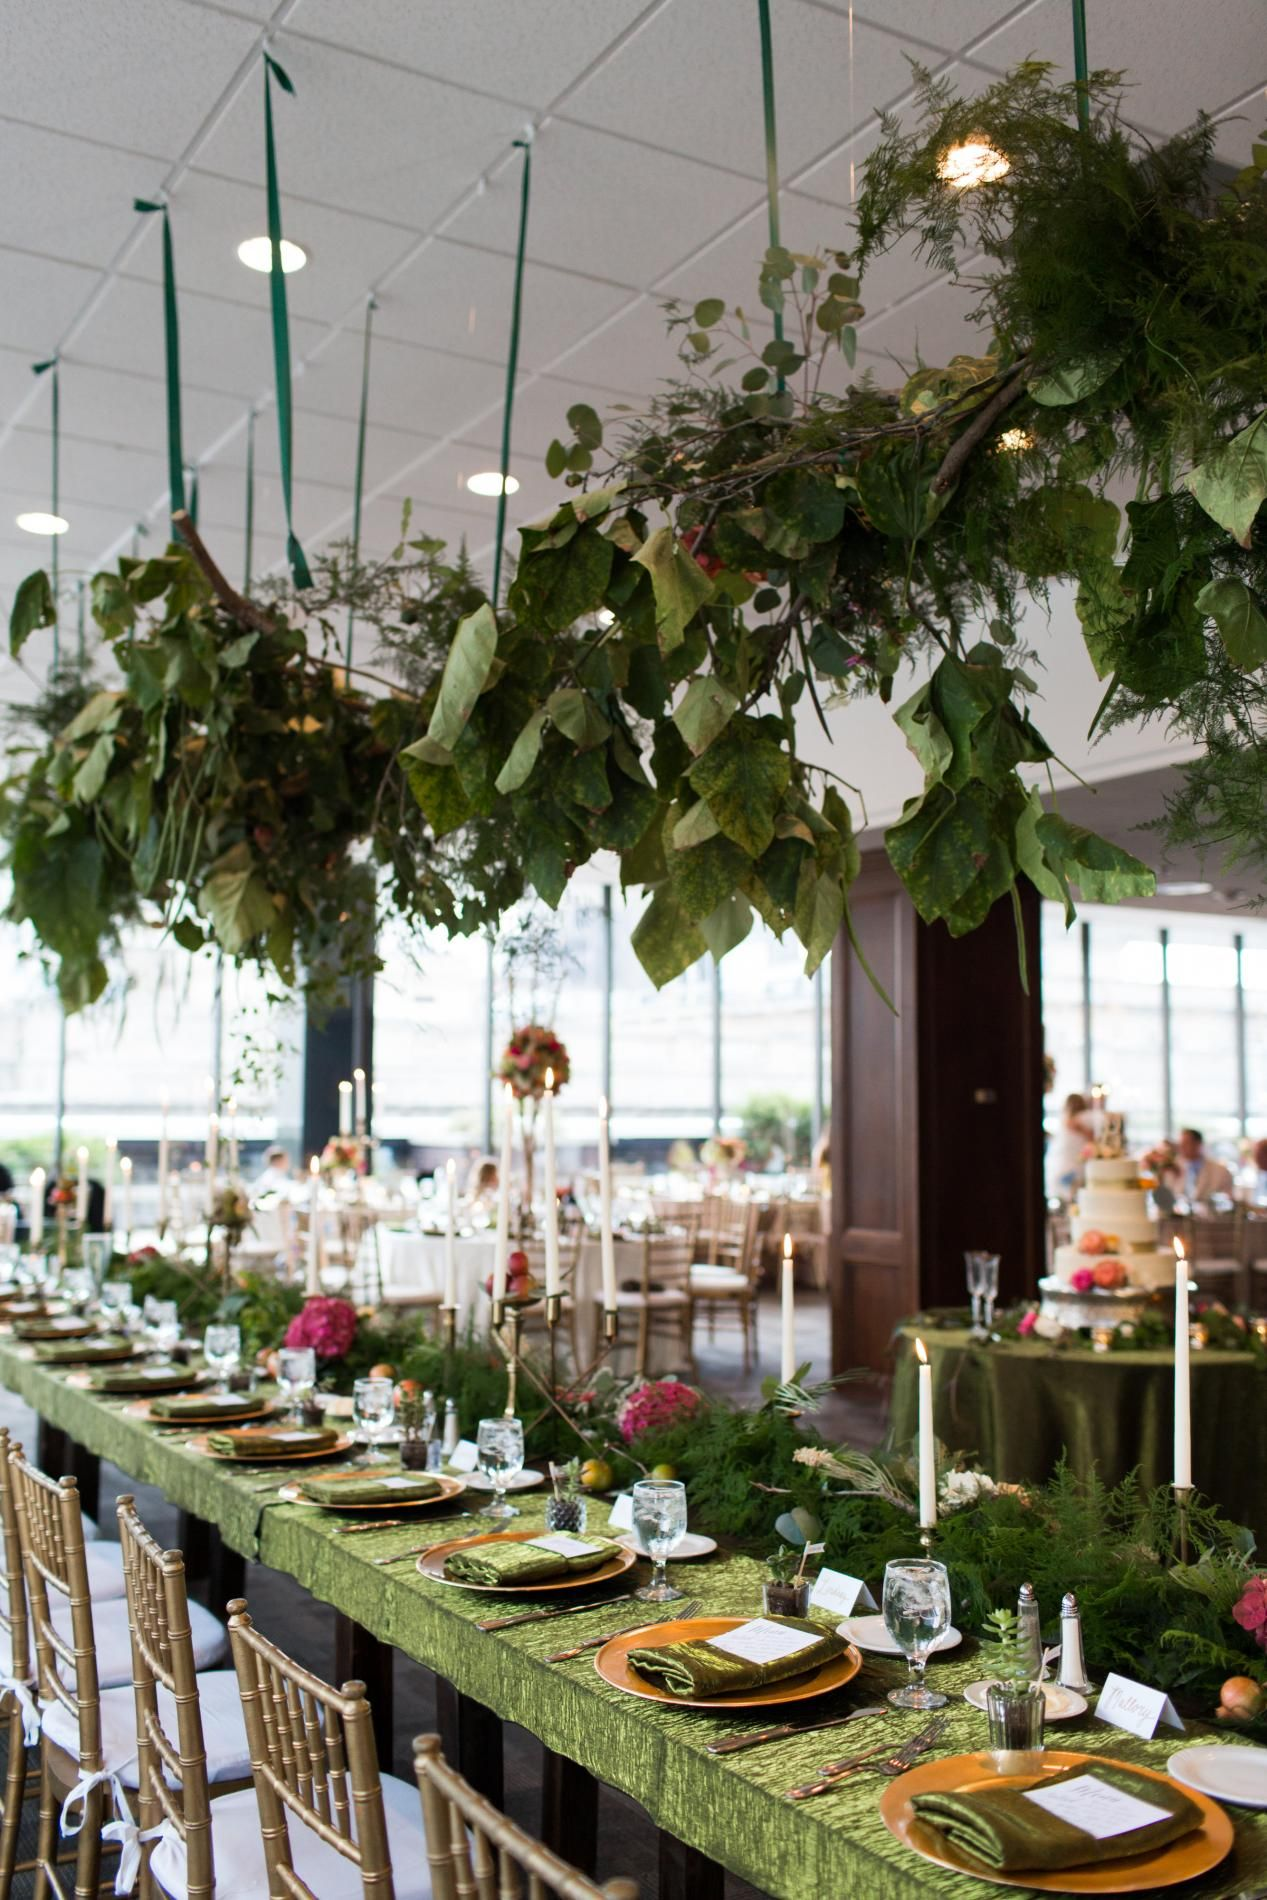 Green Tablescape Lush Table Design For A Earthy Wedding Lavish Greenery Decor Themed Weddingday Magazine